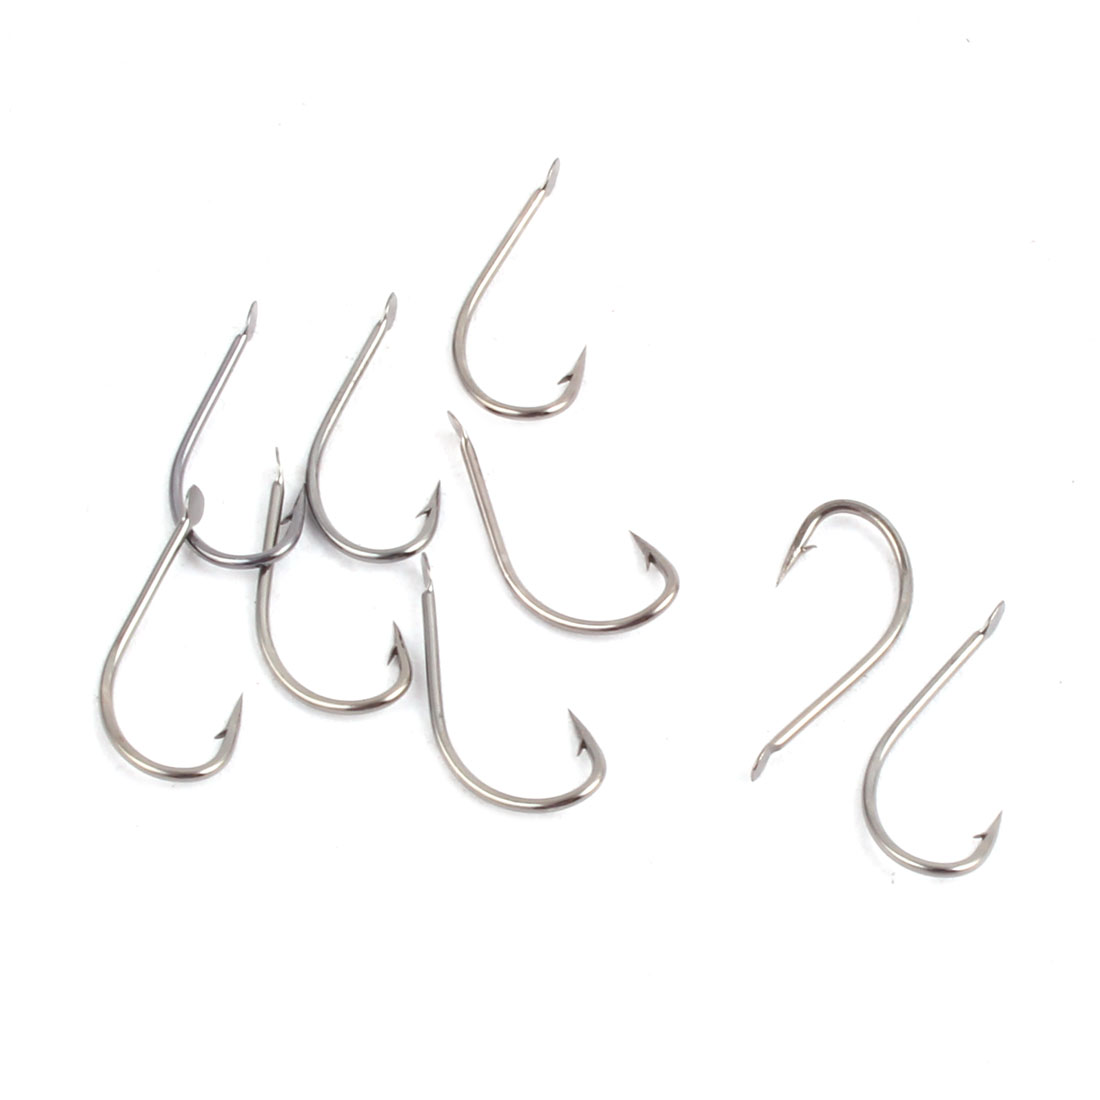 9 pcs Fishmaster Super Sharp Durable Fish Hook